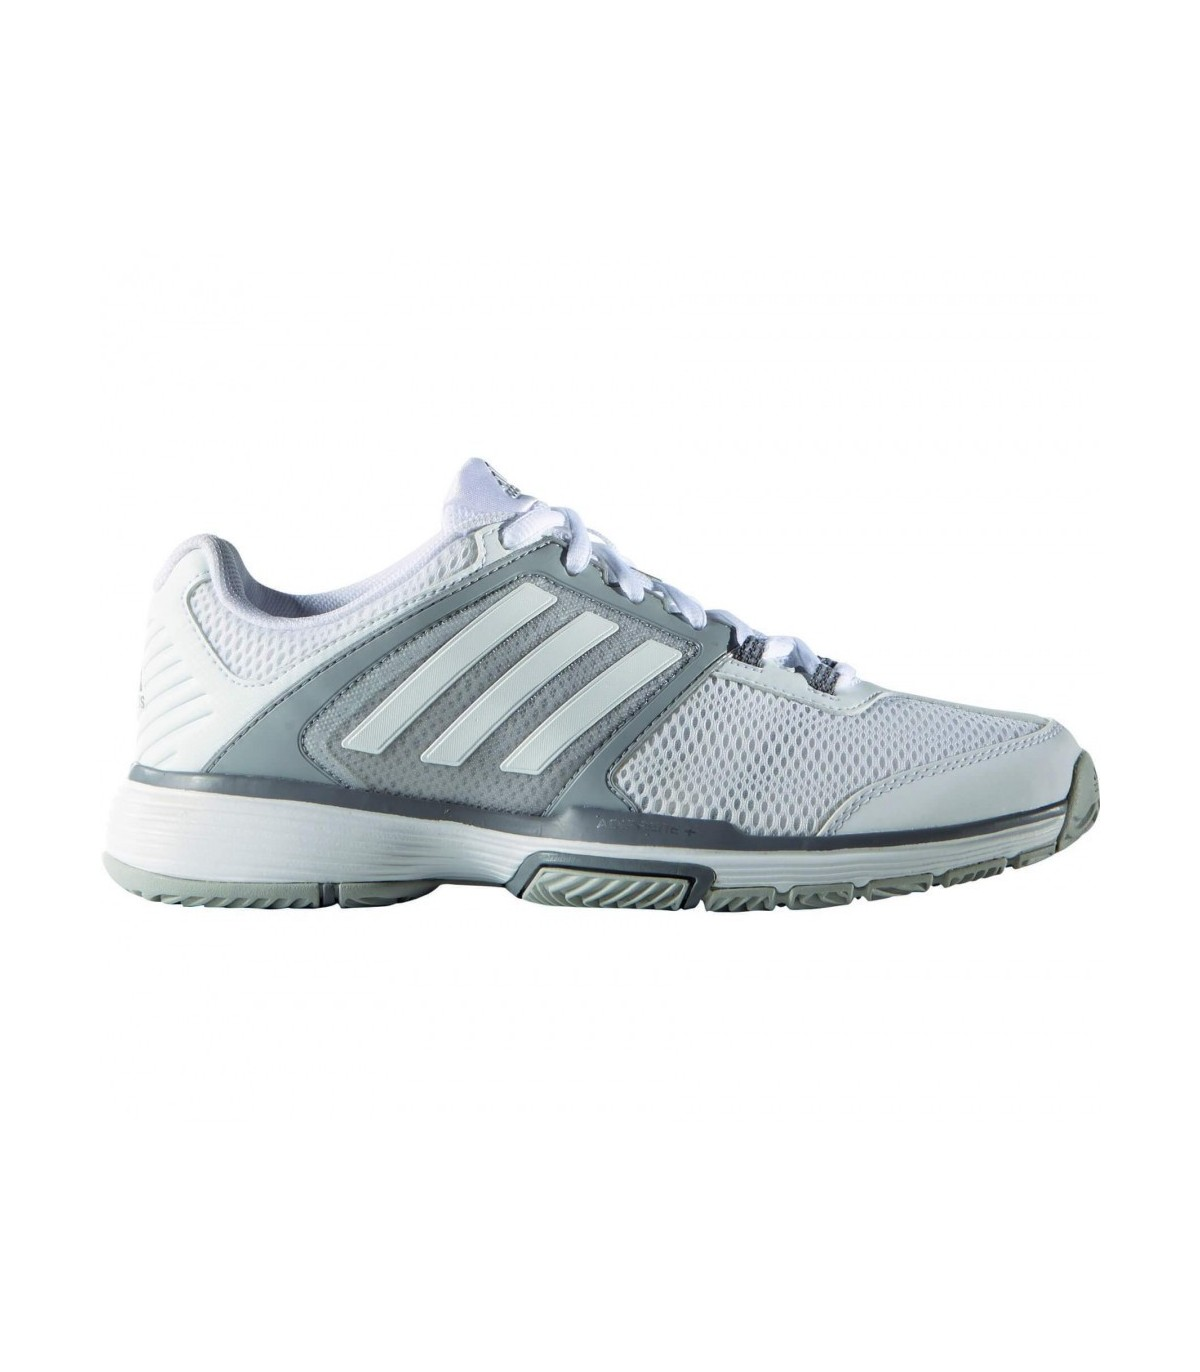 new concept 1be78 d35fa ... Adidas Barricade Club Femme Blanc  Argent · Chaussure ...